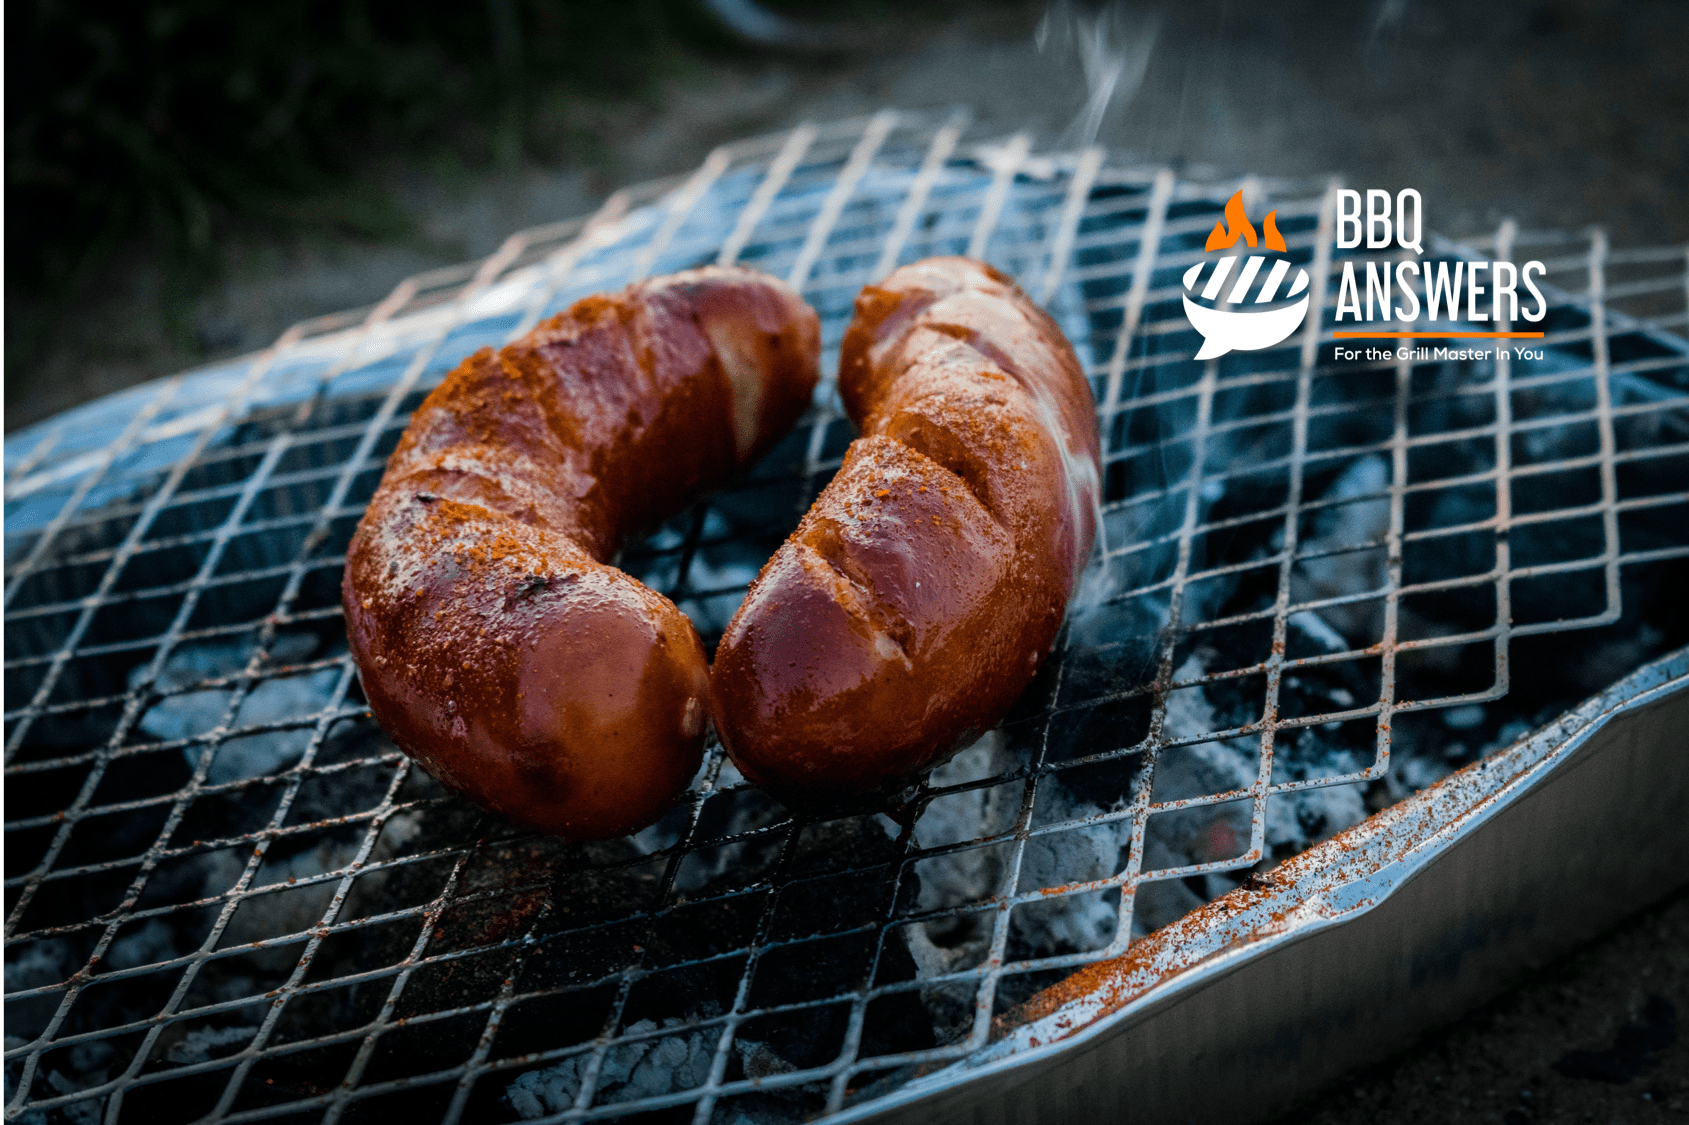 Cooking on a Disposable BBQ Grill   BBQanswers